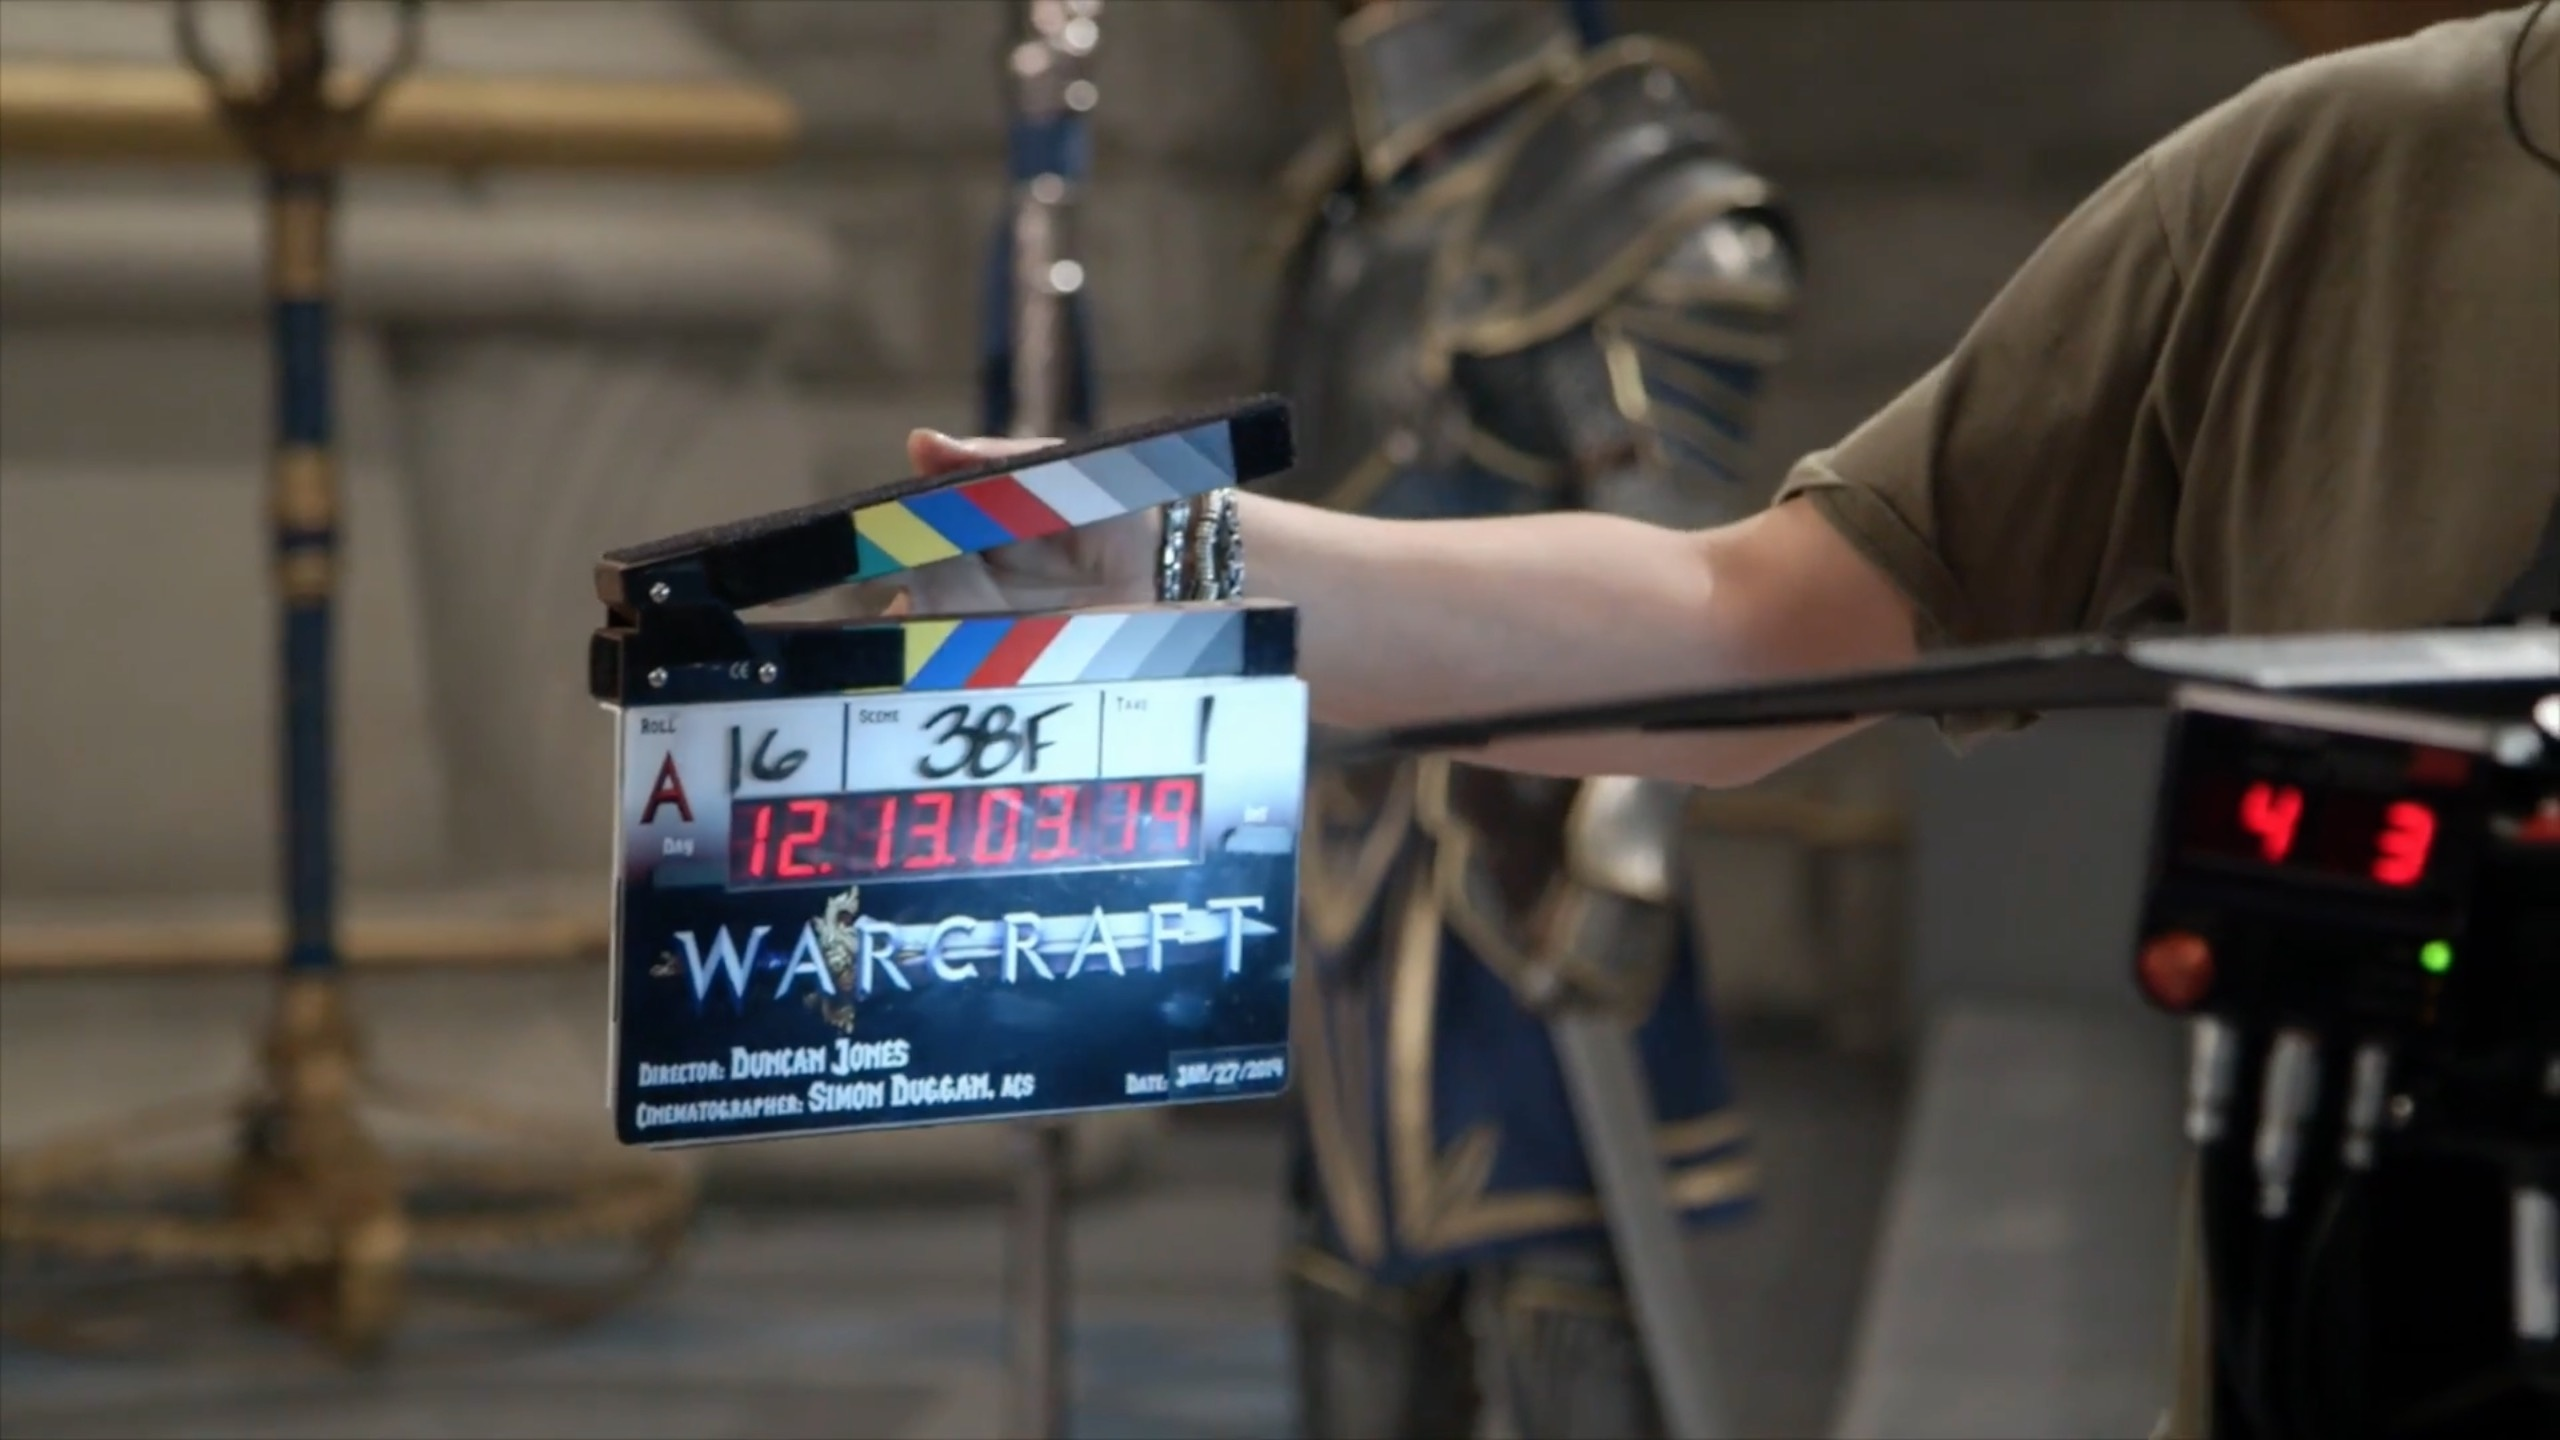 duncan jones warcraft